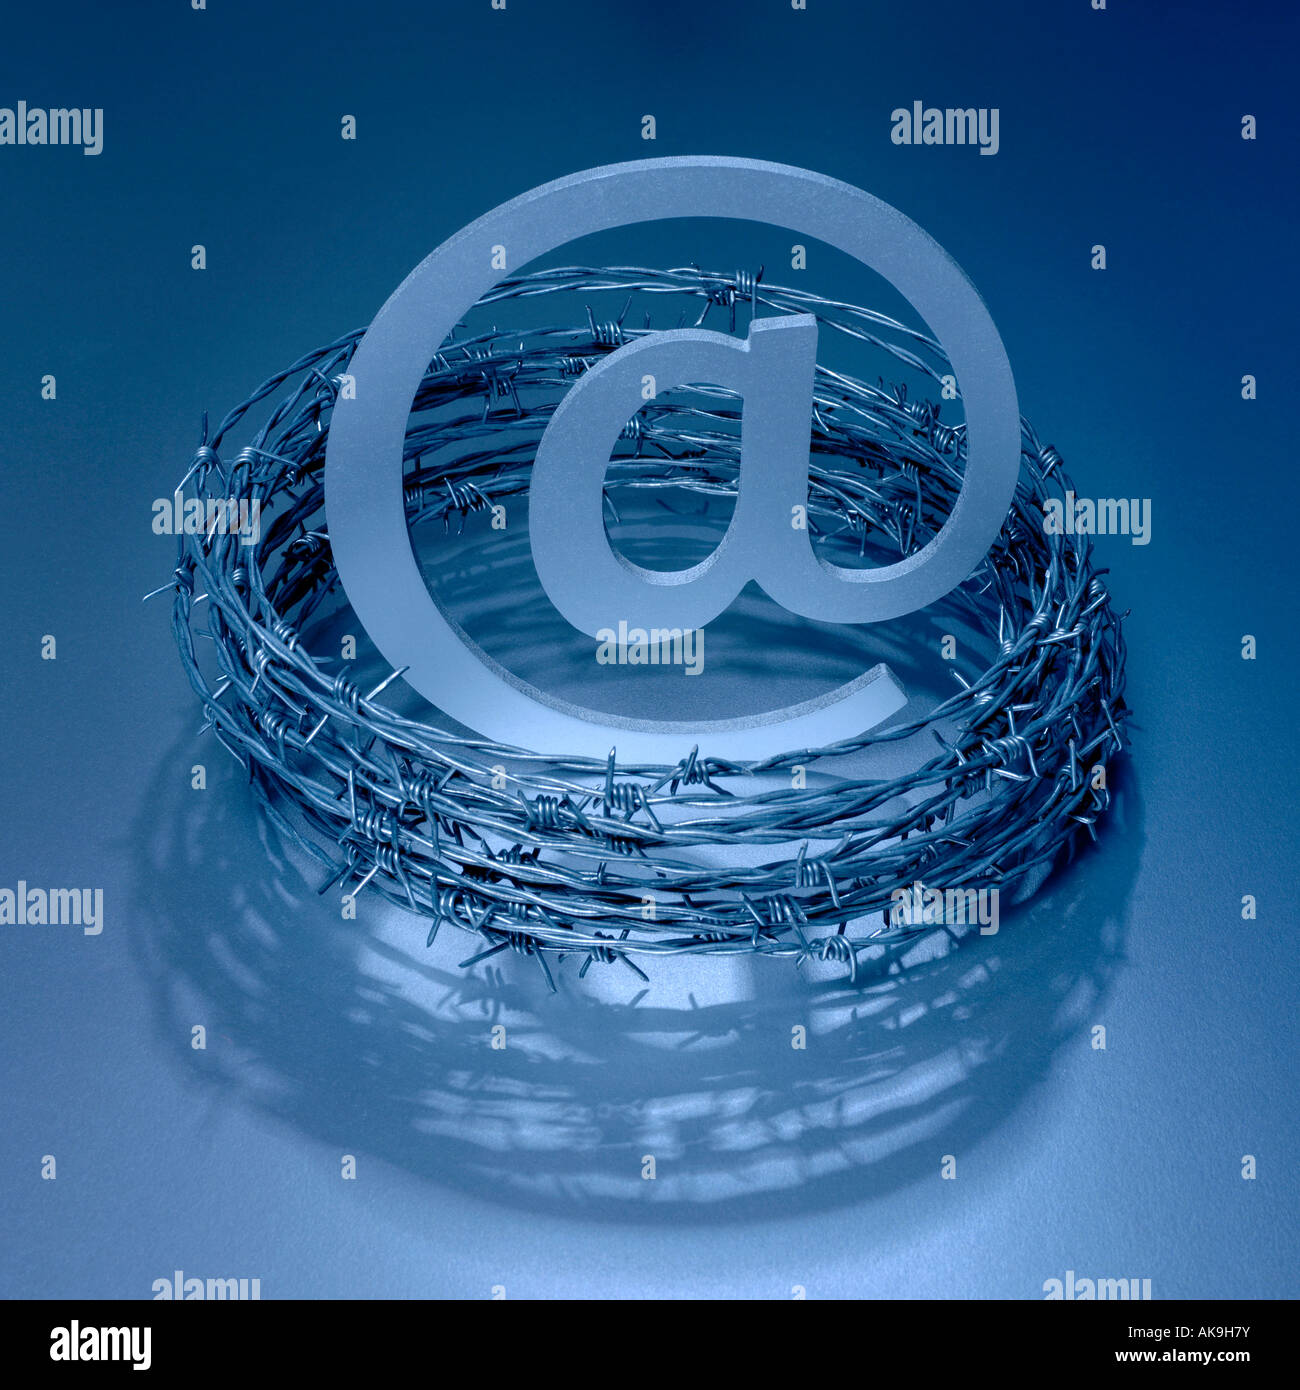 Barbed E Stock Photos & Barbed E Stock Images - Alamy